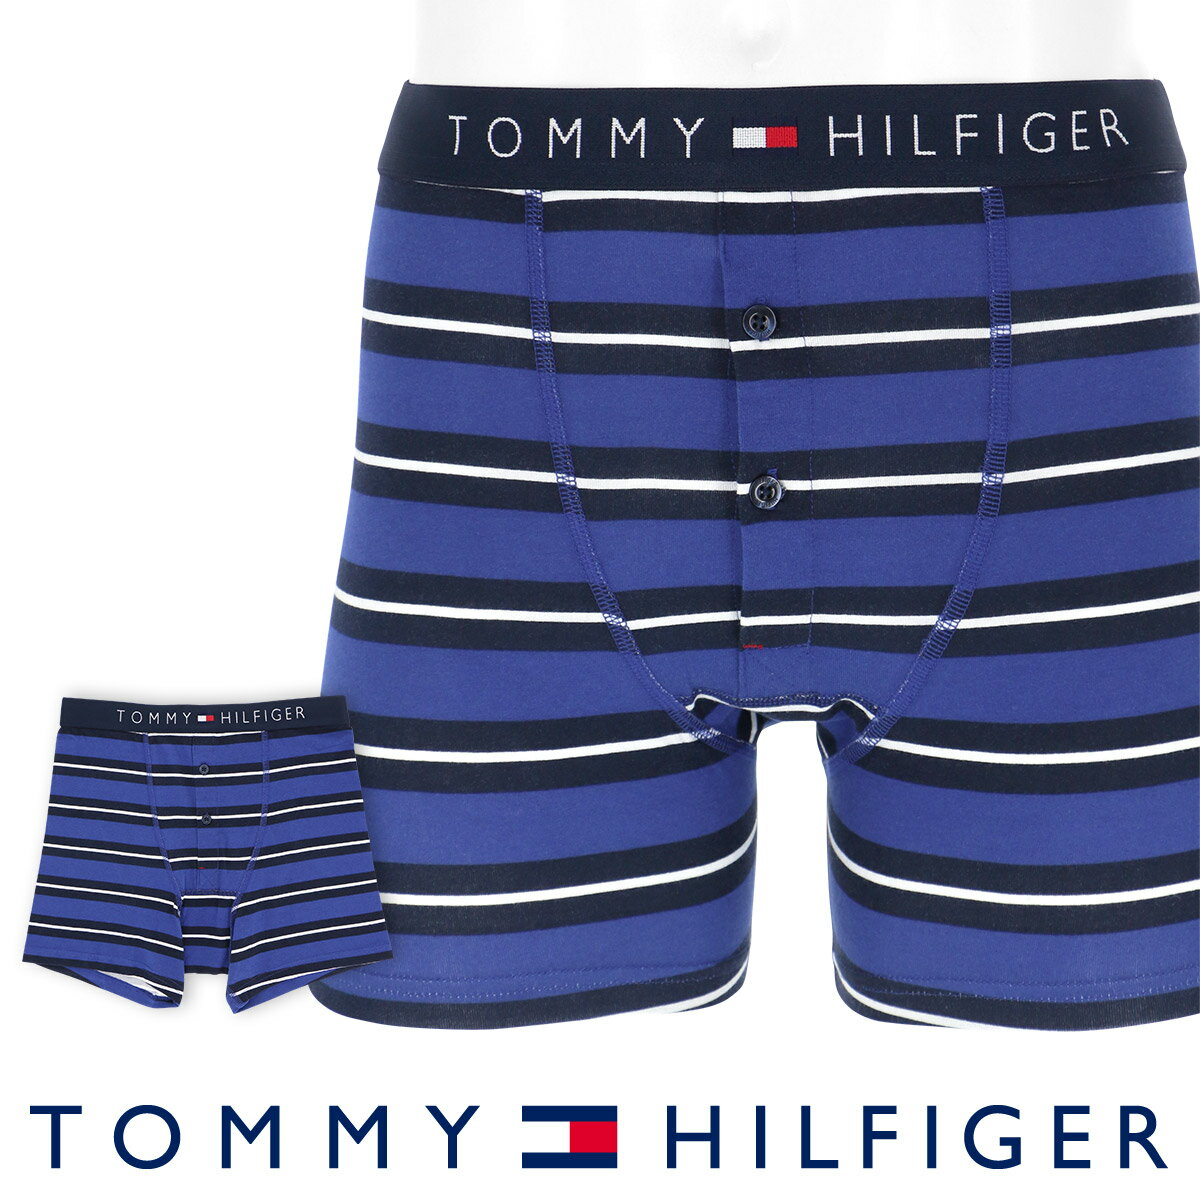 TOMMY HILFIGER|トミーヒルフィガーJAPAN LIMITED 日本限定COTTON ICON BUTTON FLY BOXER BRIEF STRIPE コットン アイコン ストライプ ボクサーパンツ5338-1050男性 メンズ プレゼント 贈答 ギフトポイント10倍